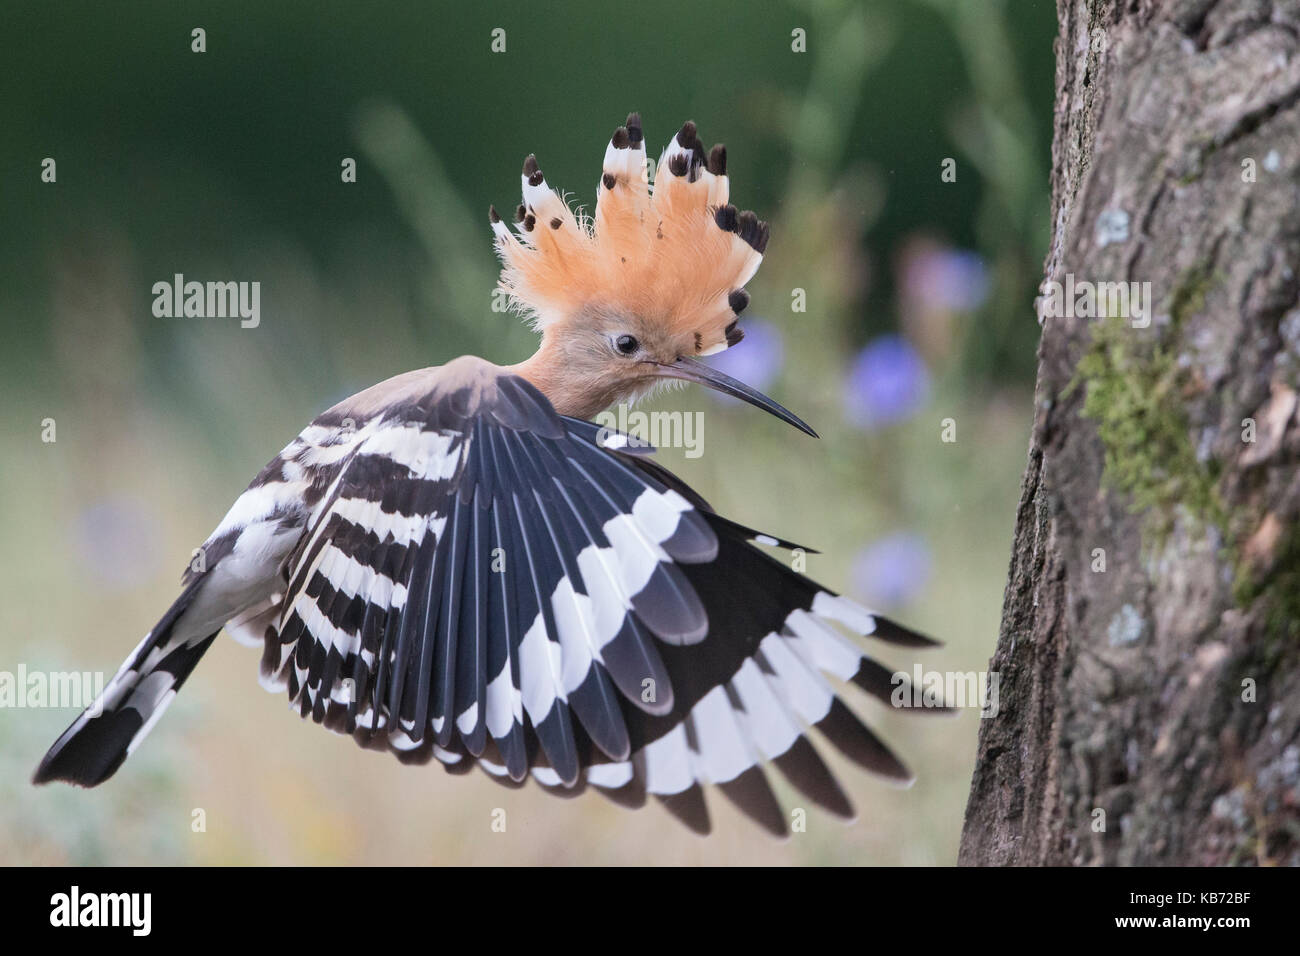 Euarasian Hoopoe (Upupa epops) flying back to nest site, Hungary, Bekes, Koros-Maros National Park - Stock Image